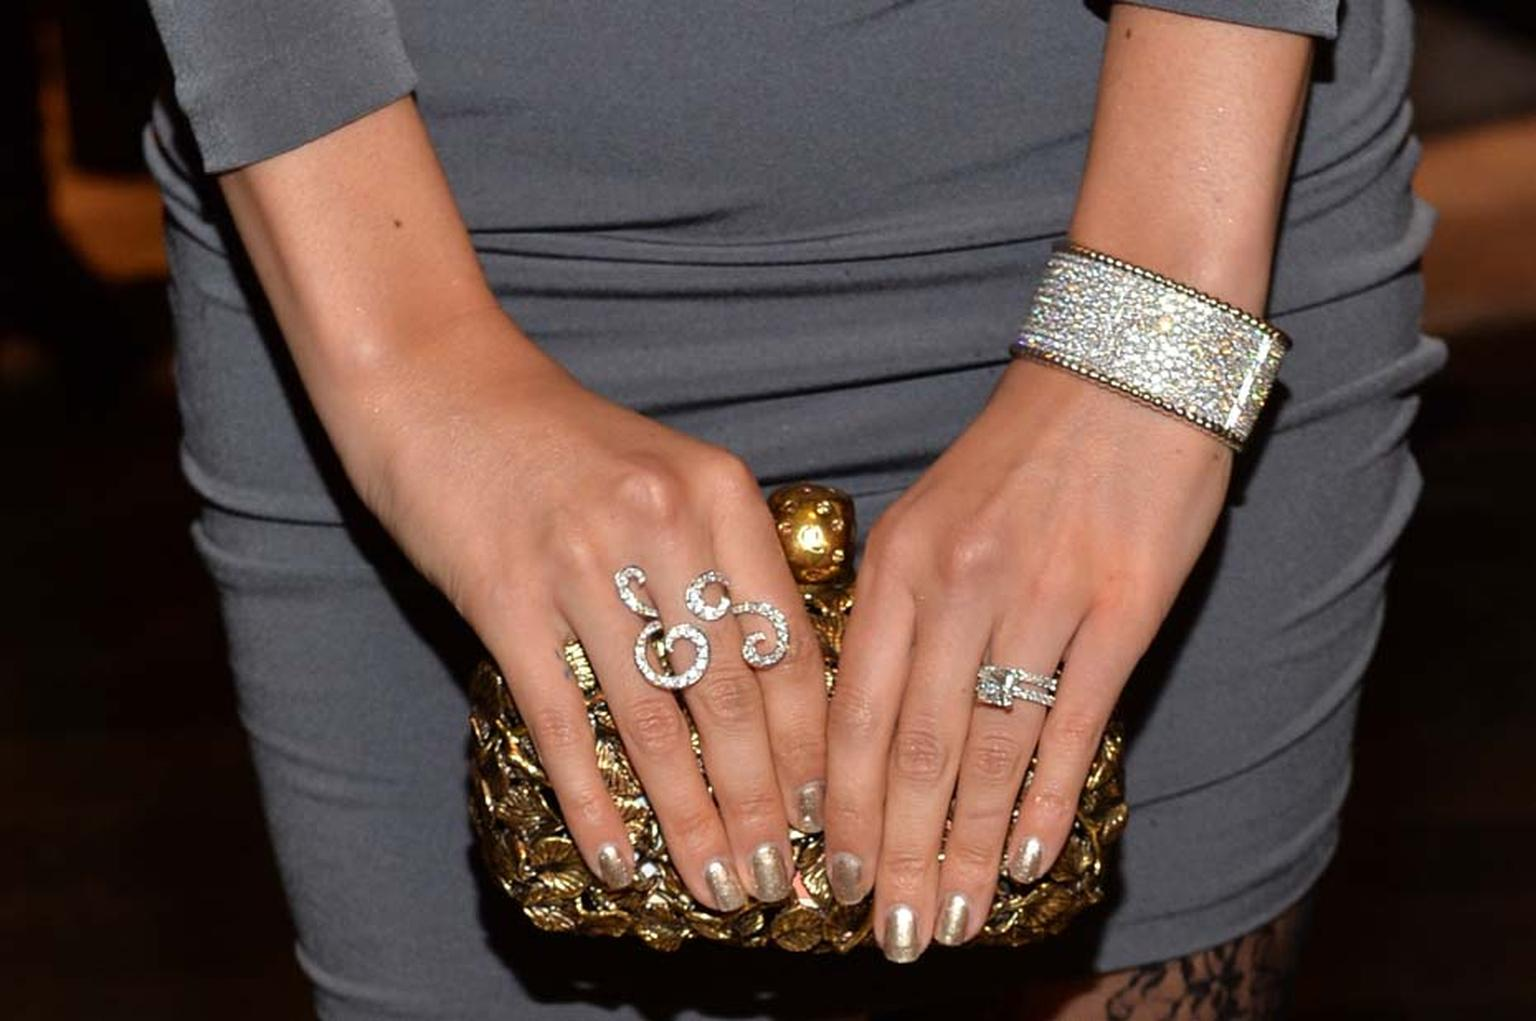 A closer look at Lisalla Montenegro's Van Cleef & Arpels jewels for the night, including an Oiseaux de Paradis Between the Finger ring and Perlée bracelet with diamonds